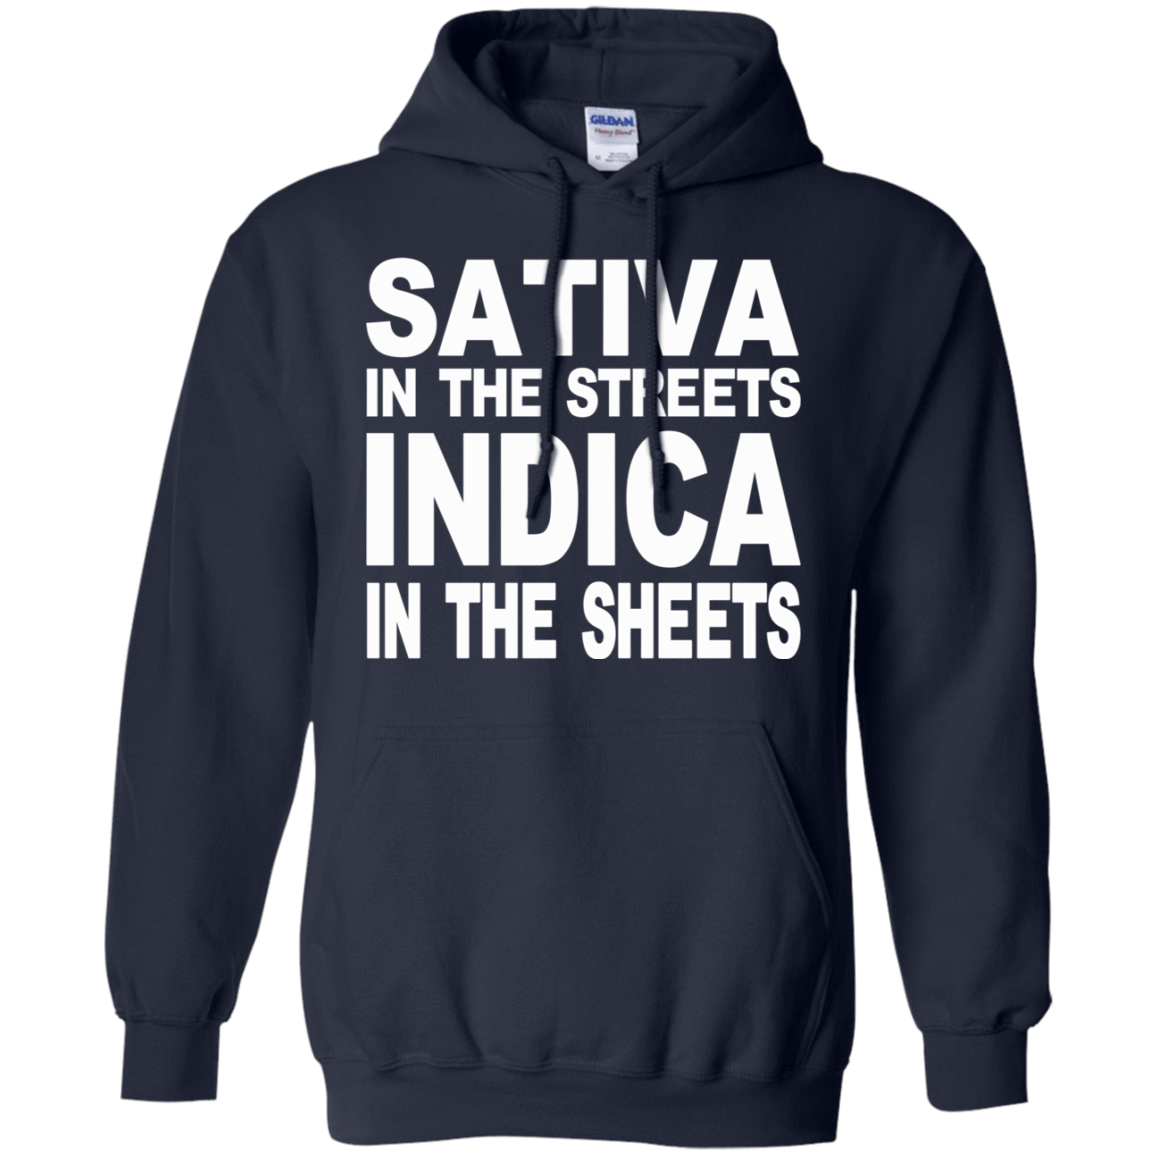 Sativa In The Streets Indica In The Sheets 541-4742-74096117-23135 - Tee Ript